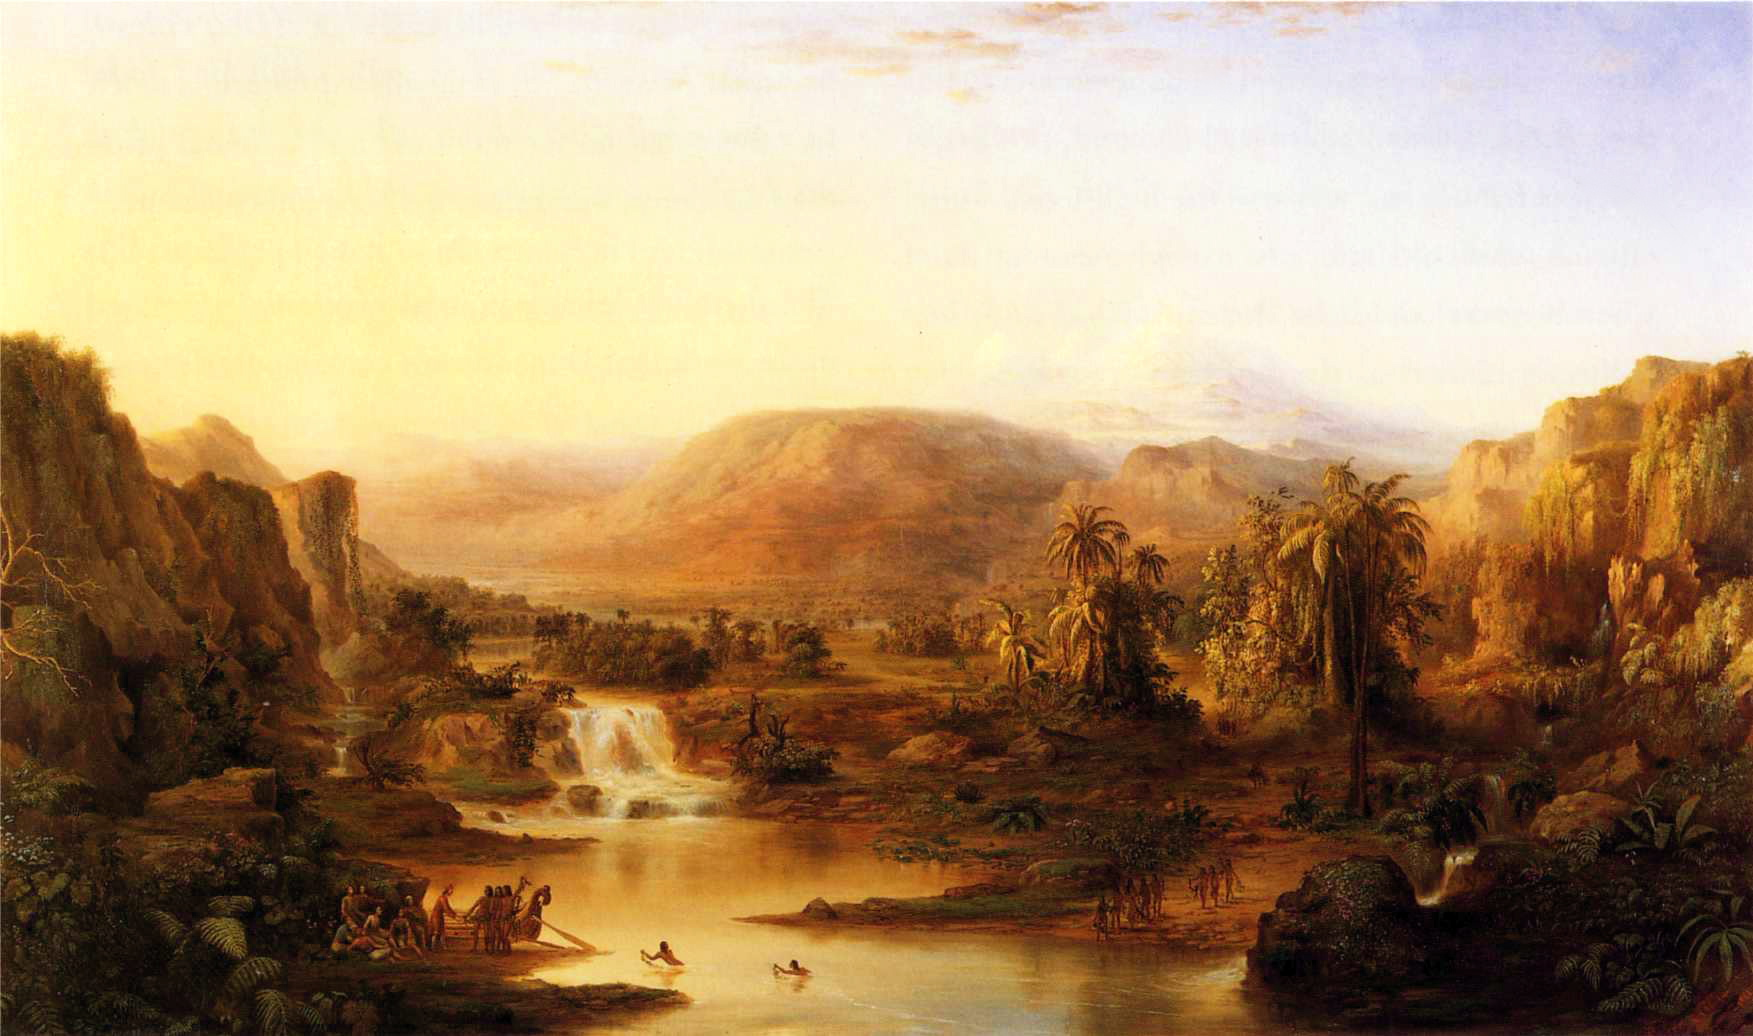 Robert_Duncanson_-_Land_of_the_Lotos_Eaters